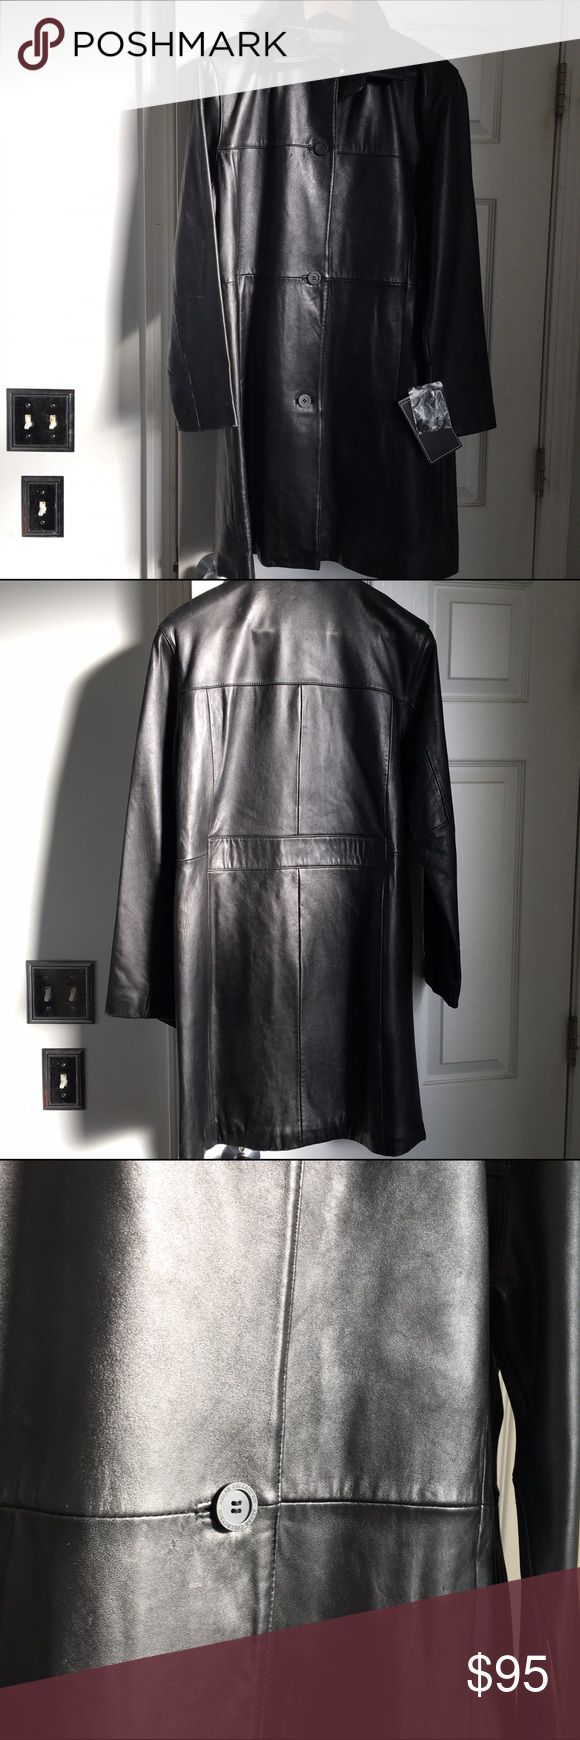 """Adler 100% leather coat. Women's leather knee length coat. Fully lined. slit pockets on sides. Single breasted with four front buttons. Length: 37"""", bust 40"""" hips 42"""" (all are approximate).  Runs like a Large. Feel free to ask questions. Adler Jackets & Coats"""